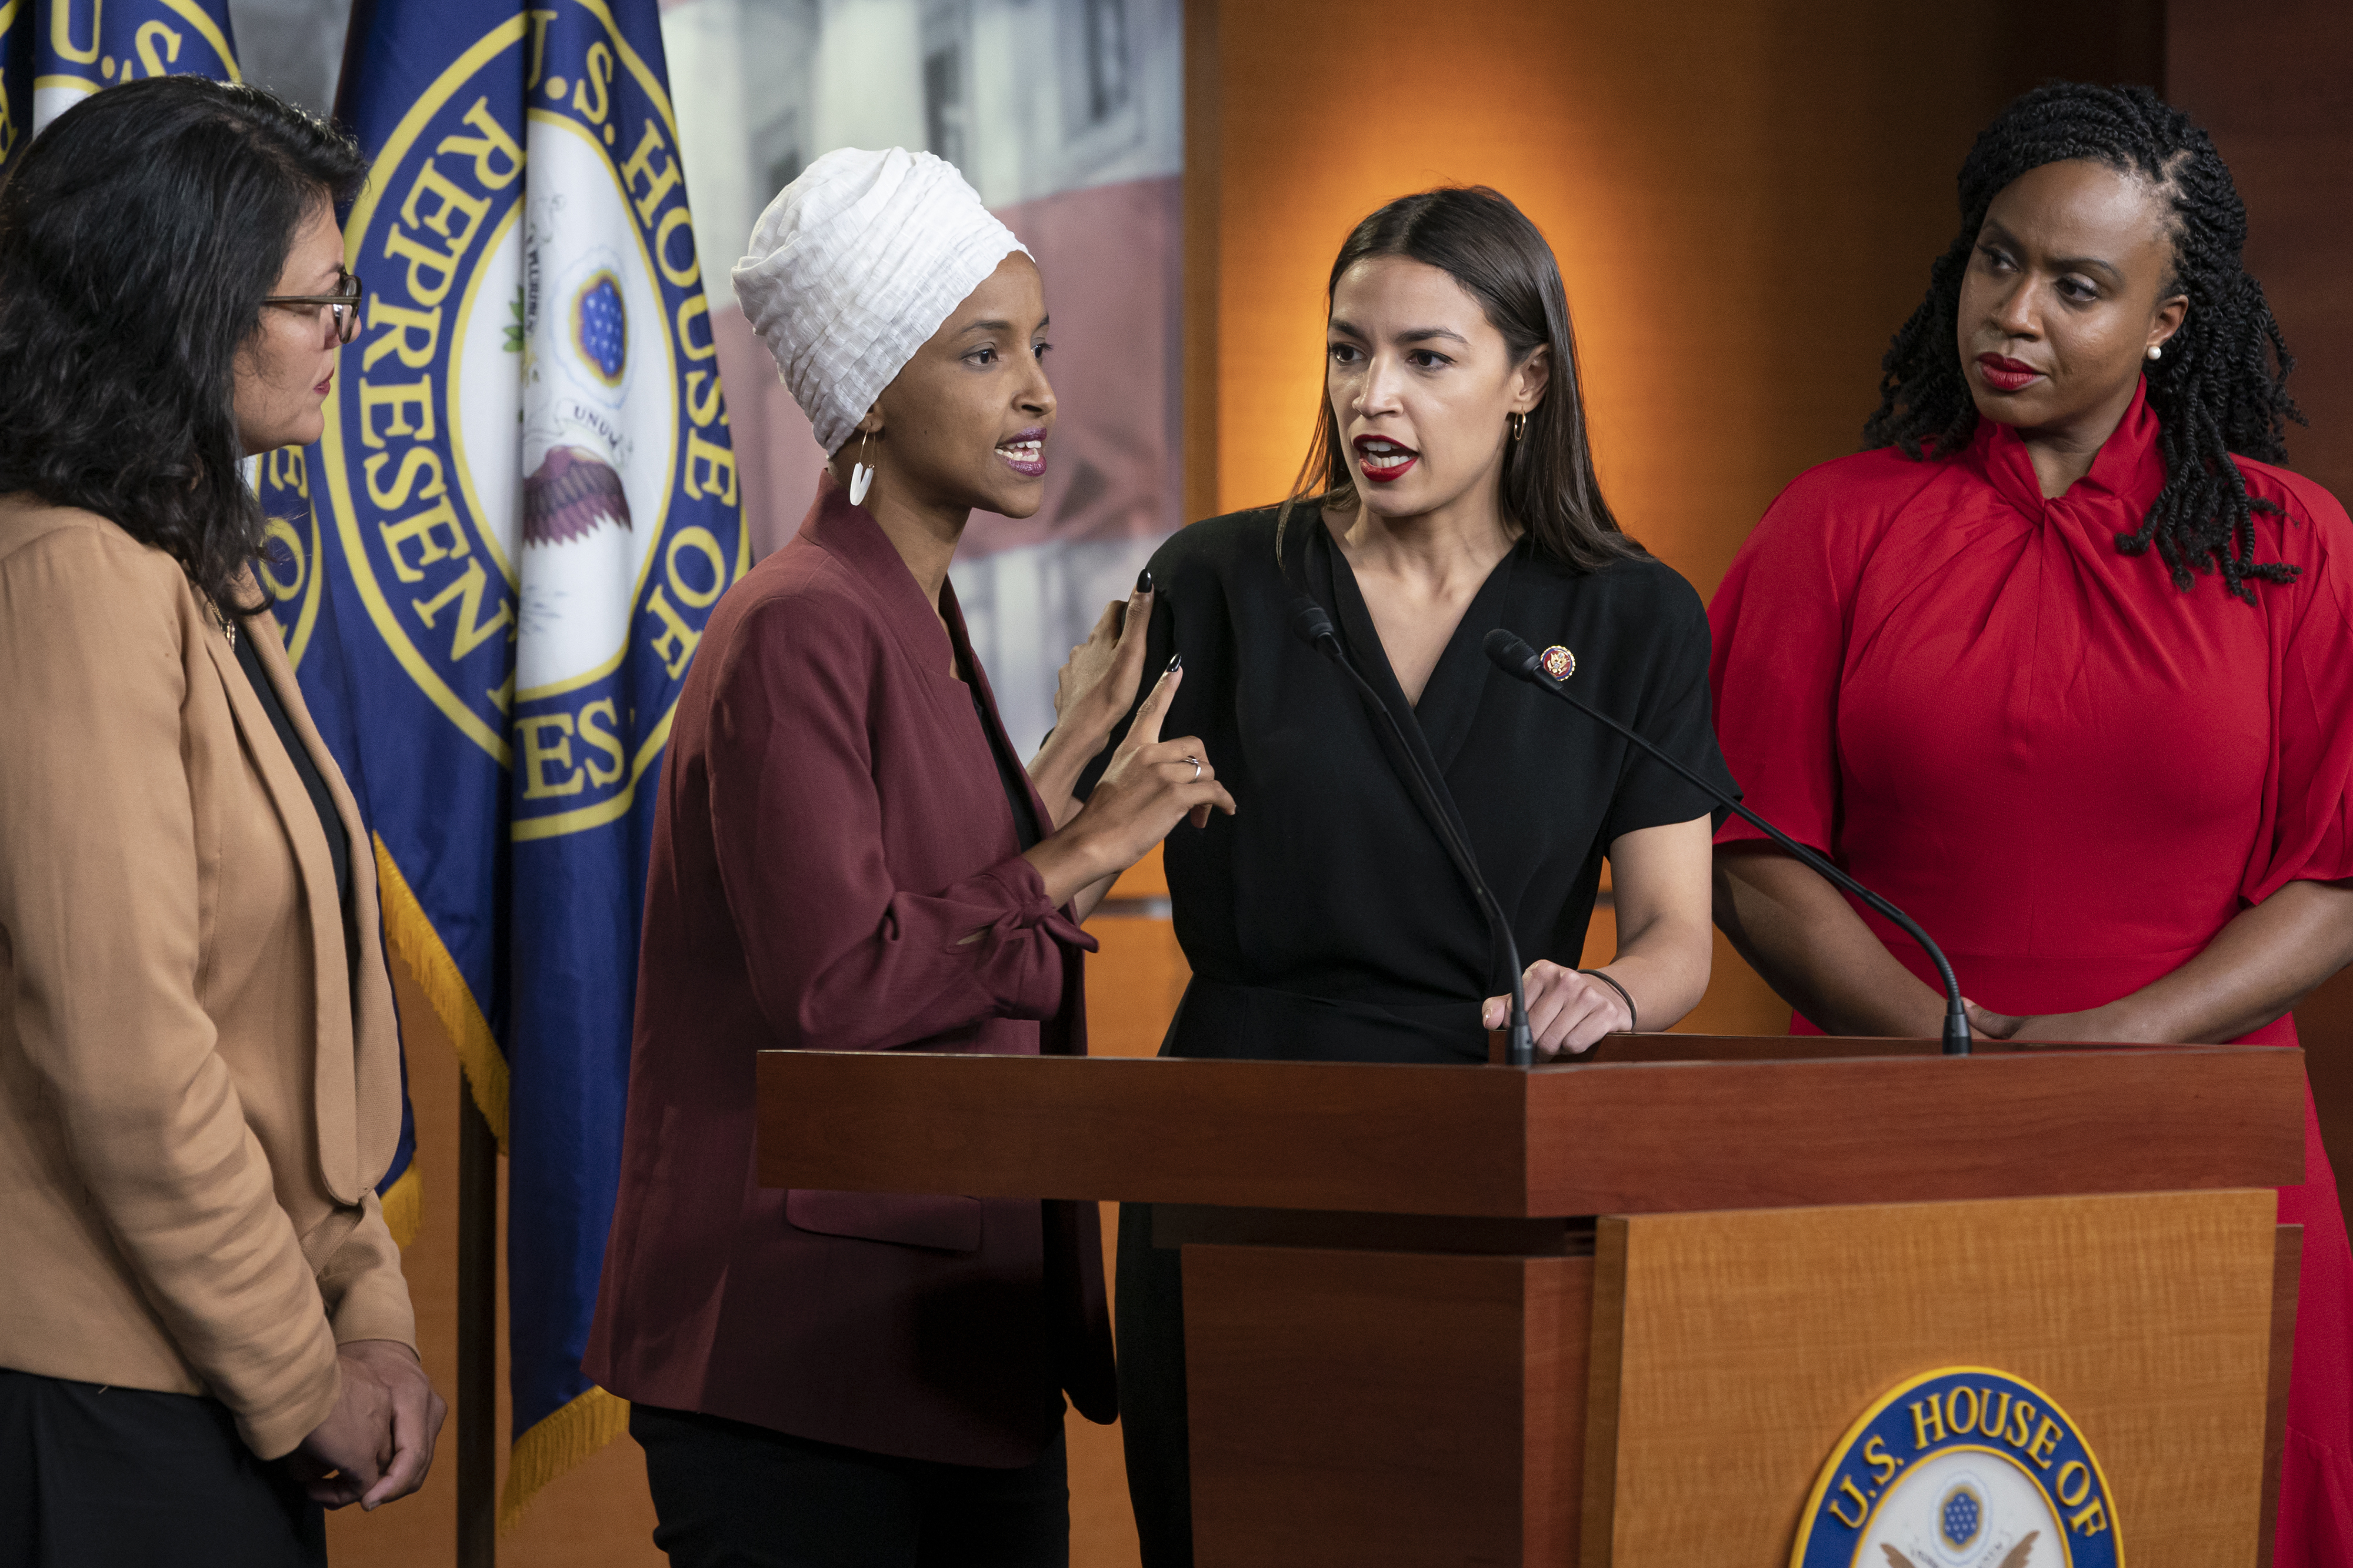 Ocasio-Cortez downplays tensions between Pelosi and 'the